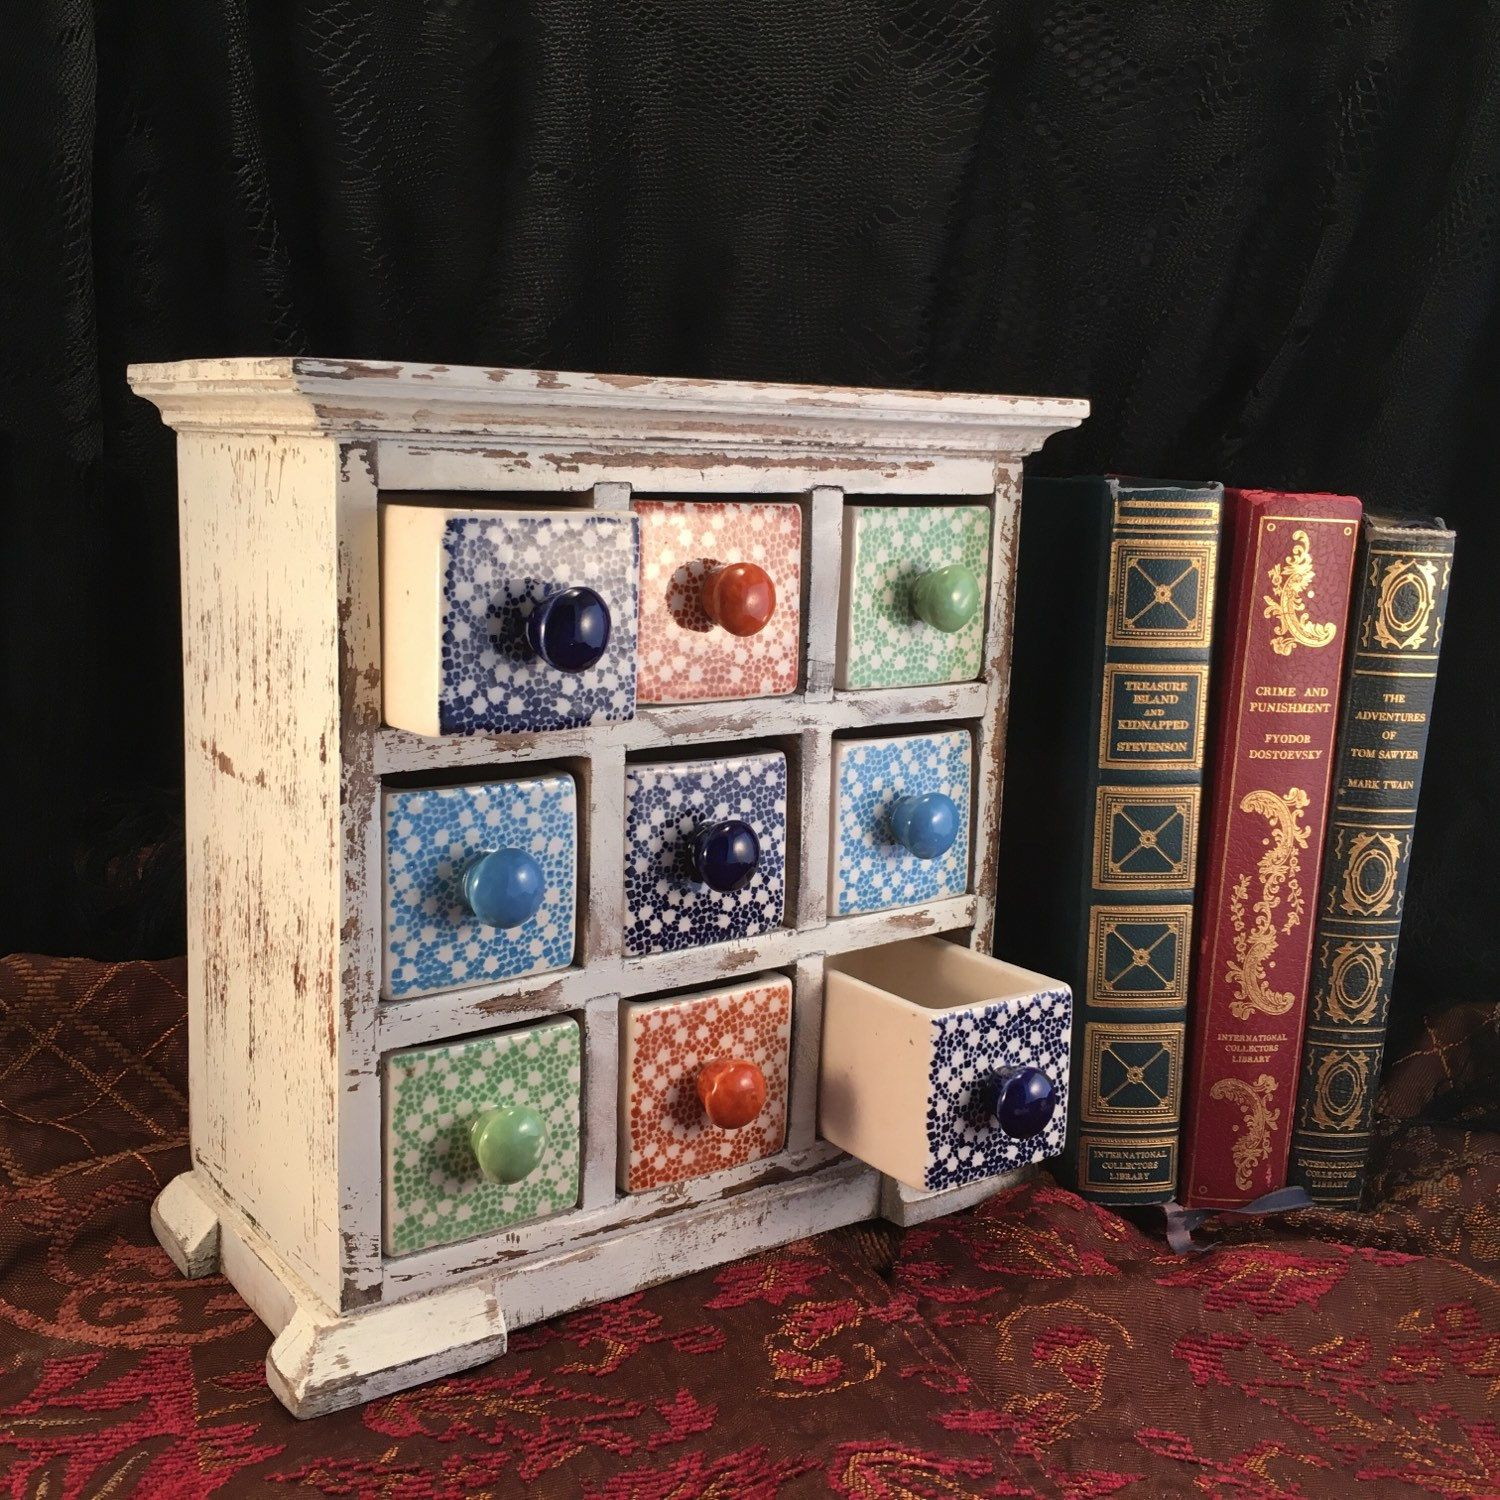 Dresser Drawer Jewelry Cabinet Spice Cabinet Handcrafted Wood Cabinet Apothecary Cabinet Wooden Trinket Box Jewelry Box Herb Drawers